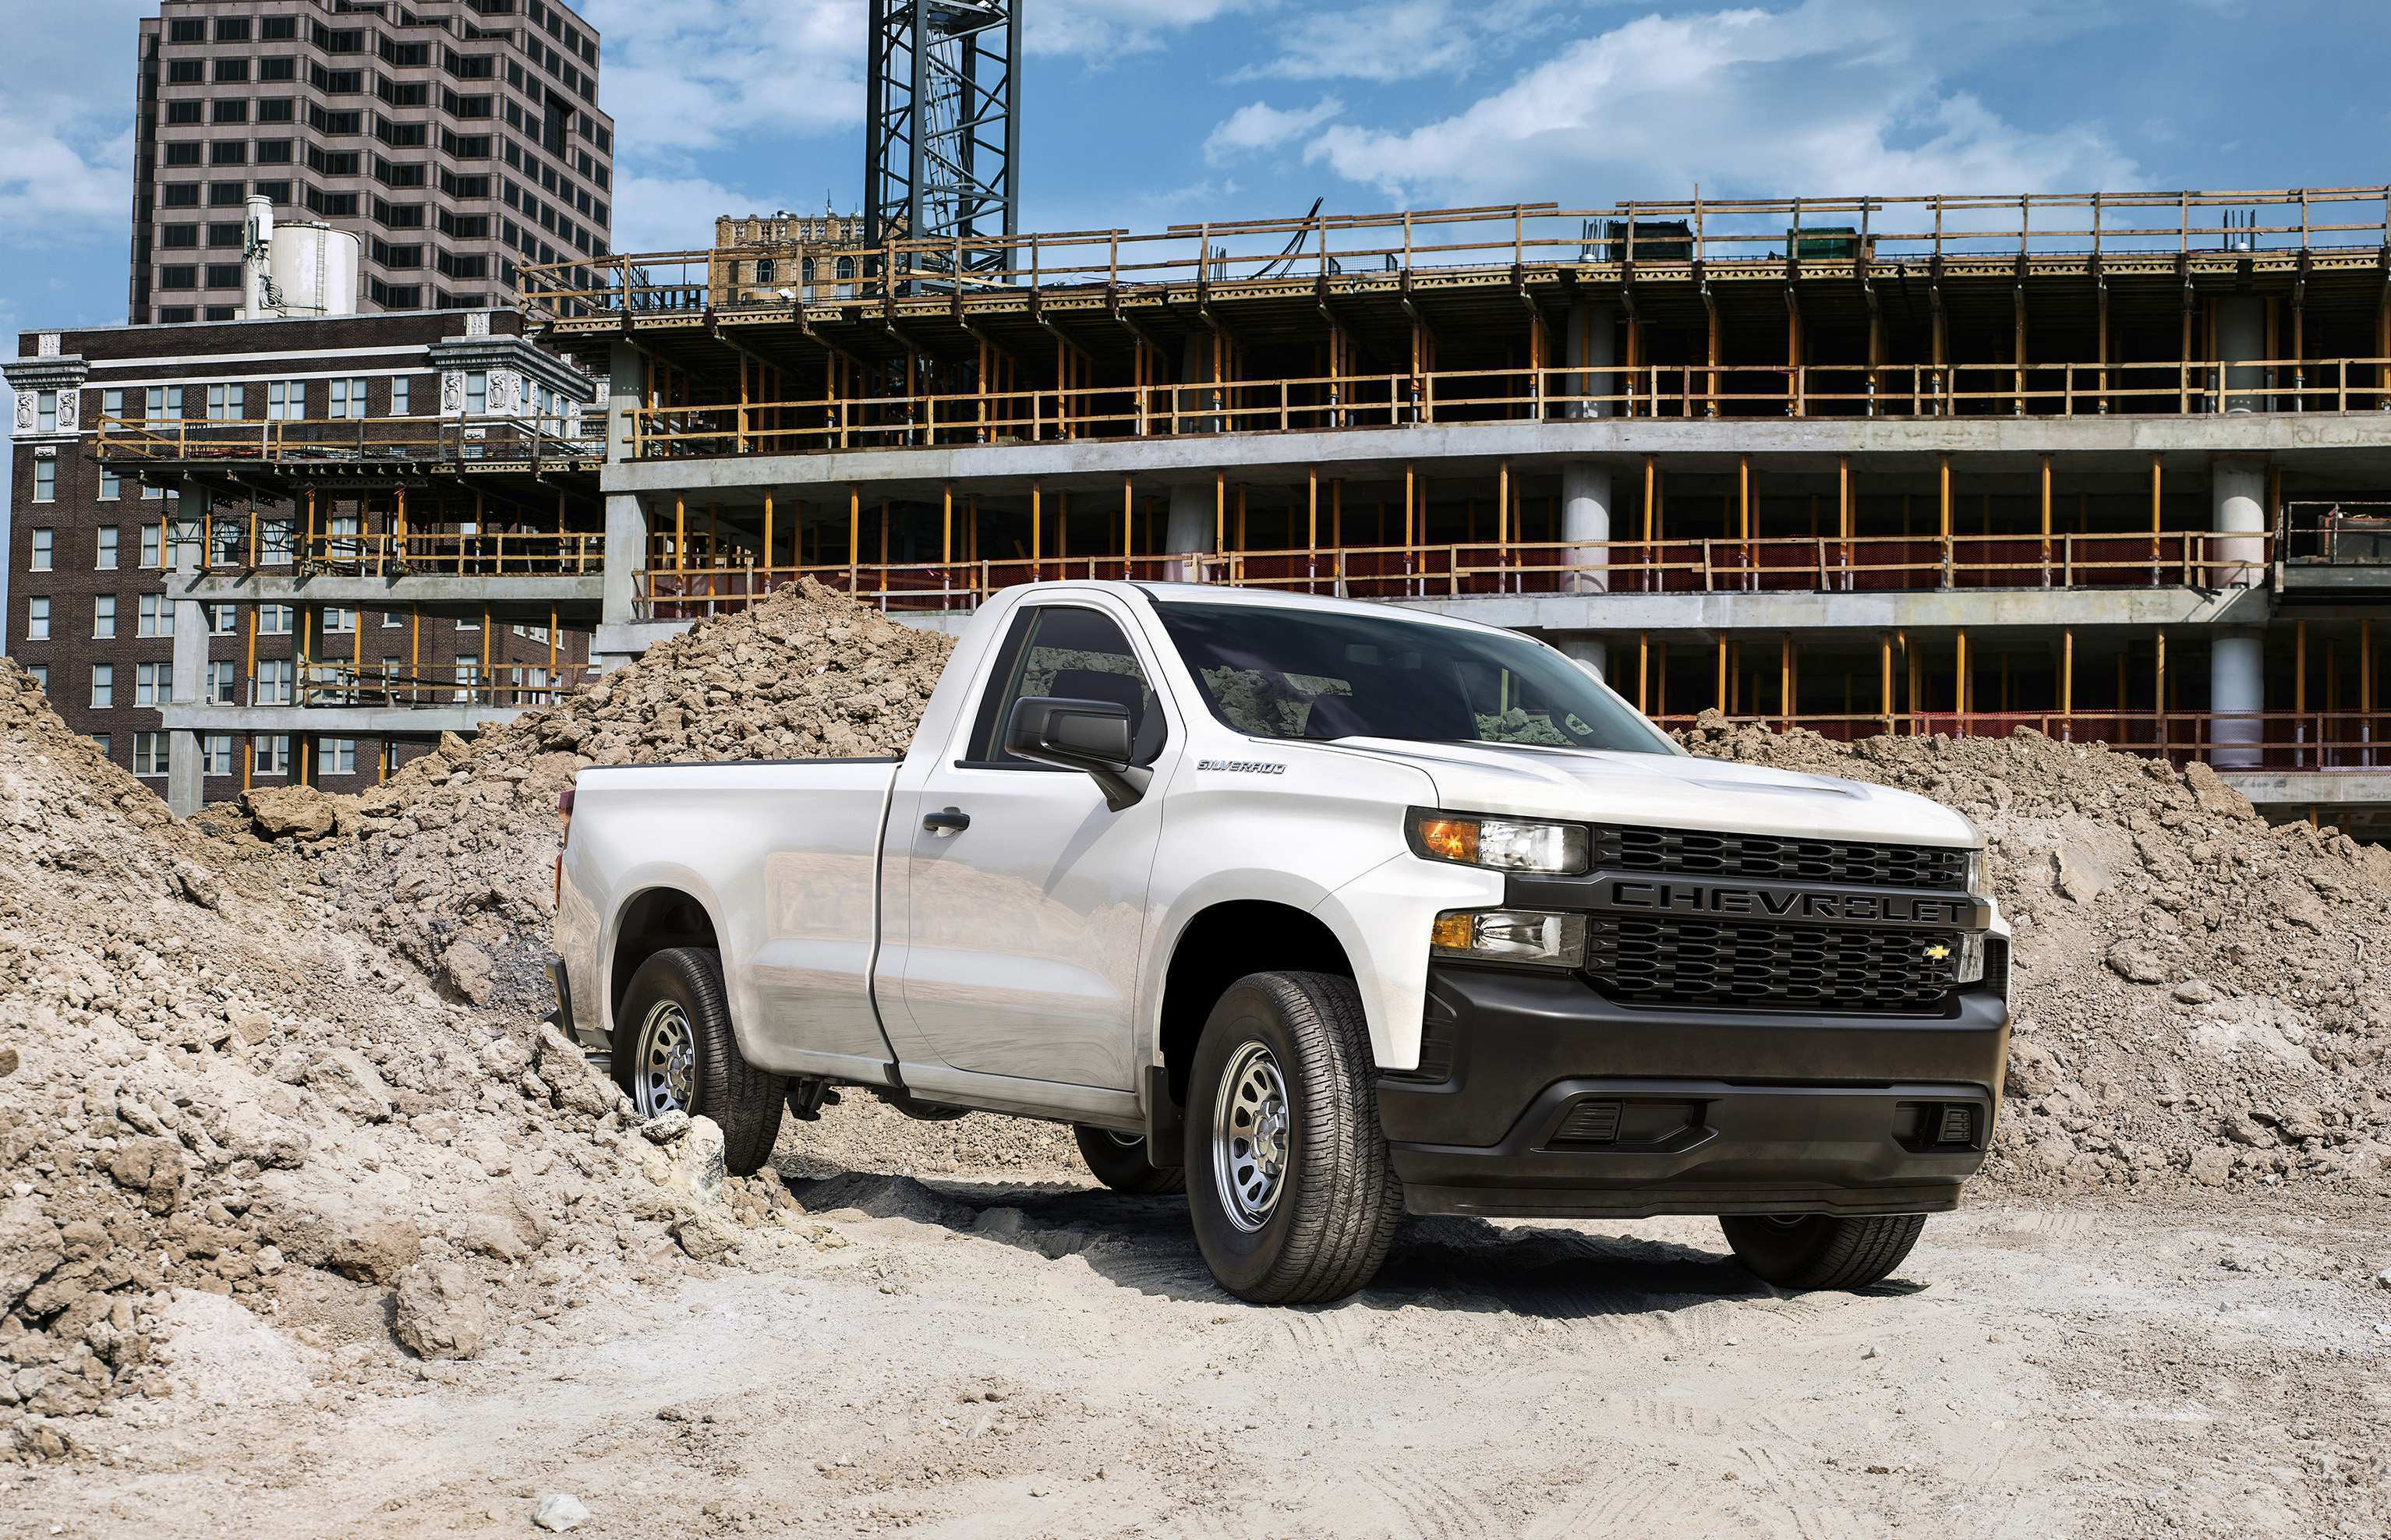 50 New 2020 Chevrolet Silverado Price and Review for 2020 Chevrolet Silverado